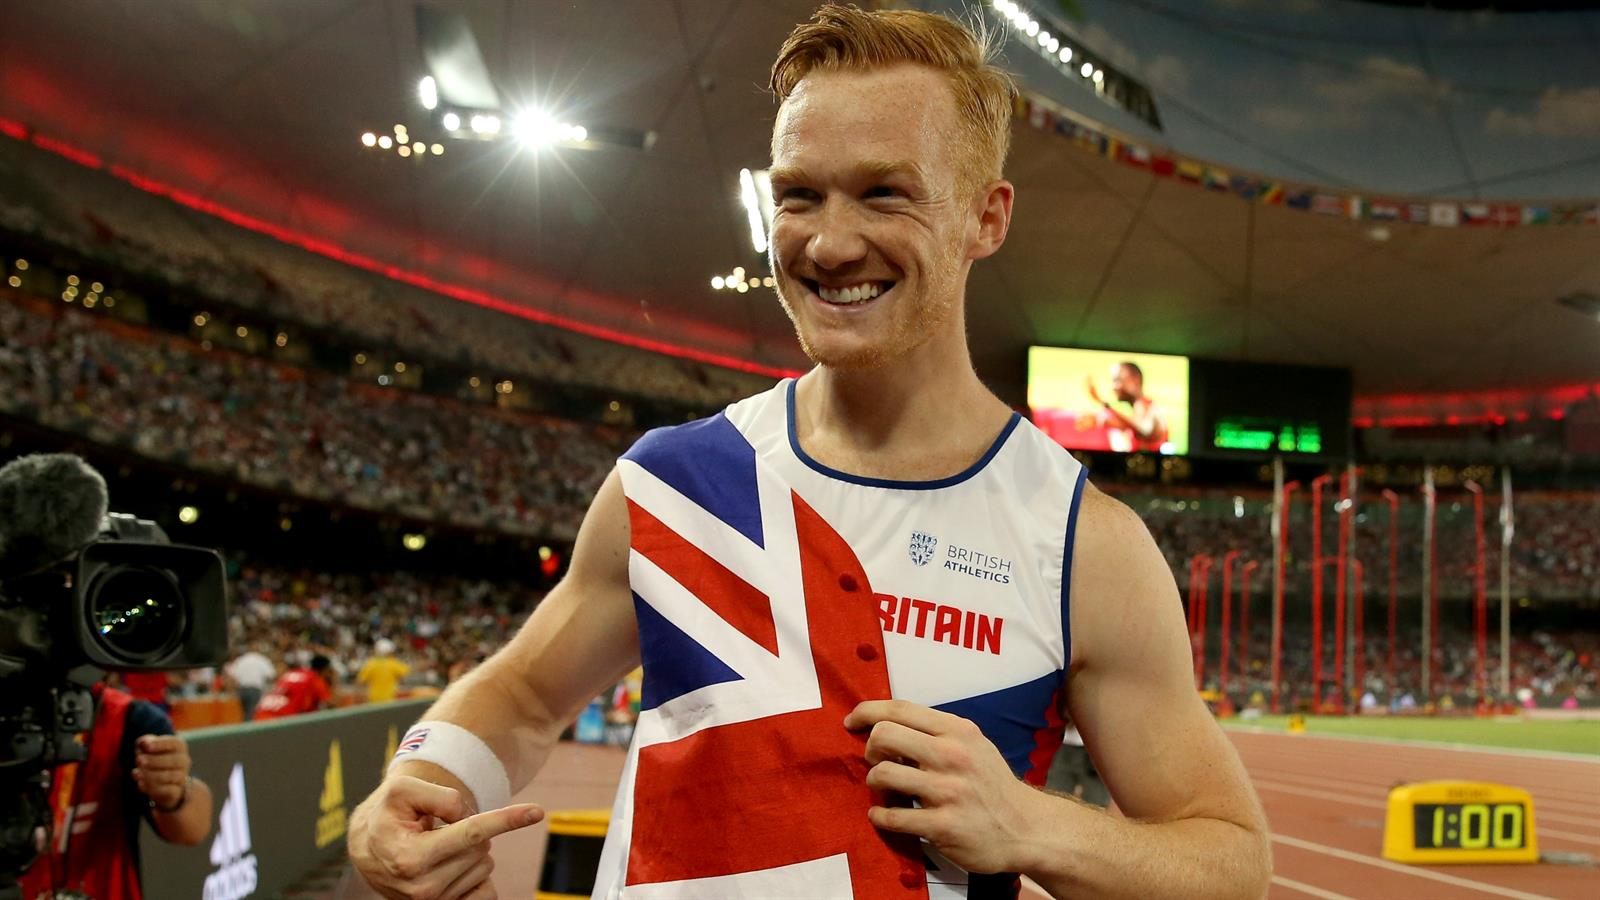 1600x900 - Greg Rutherford Wallpapers 16